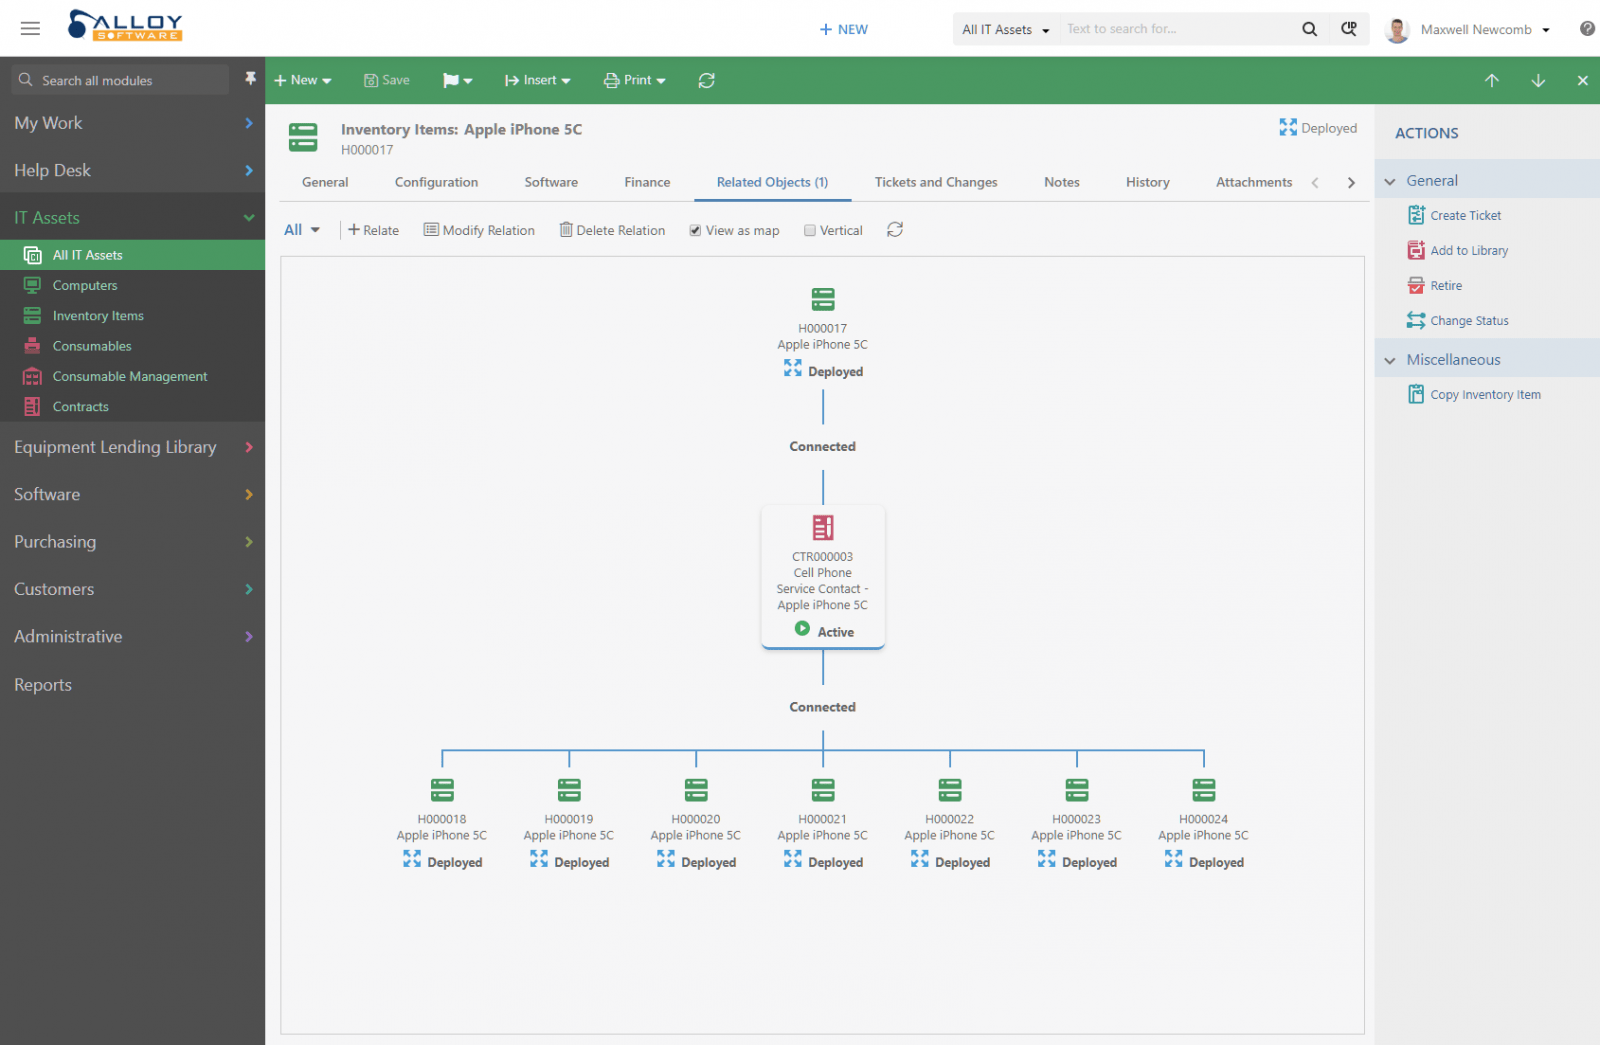 Screenshot illustrated IT Help Desk Software CMDB capabilities